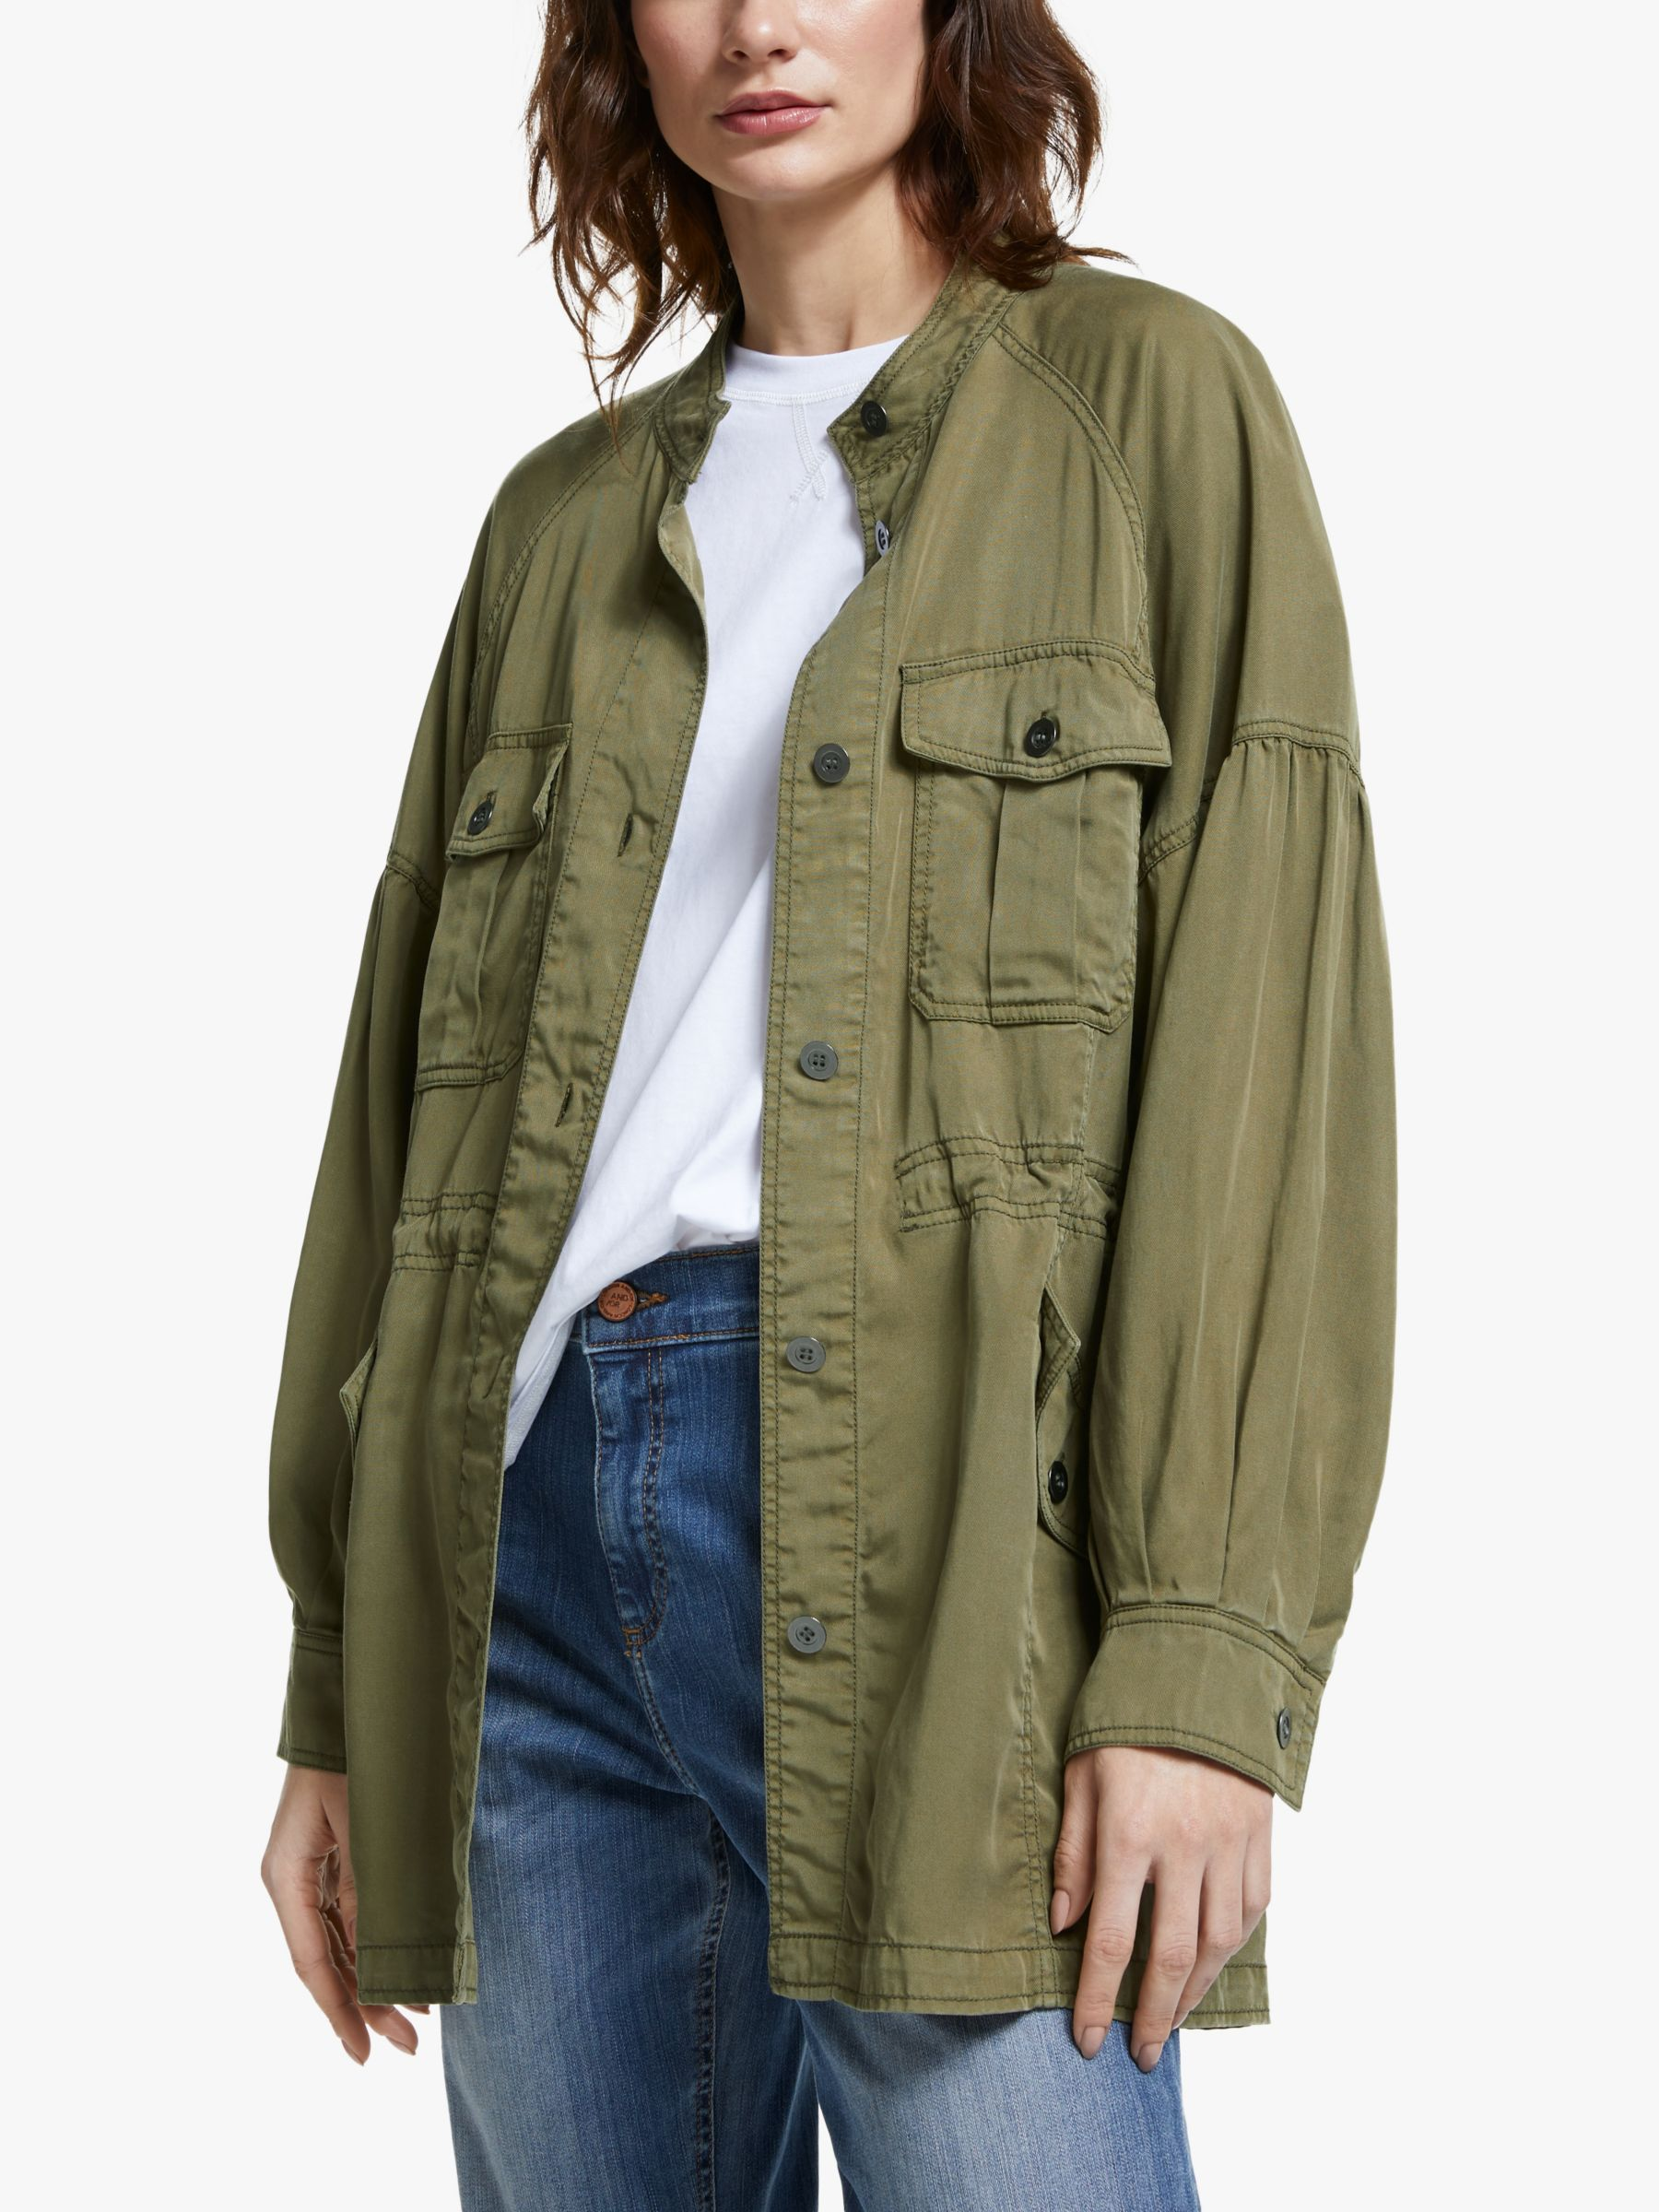 AND/OR AND/OR Belvis Utility Jacket, Khaki